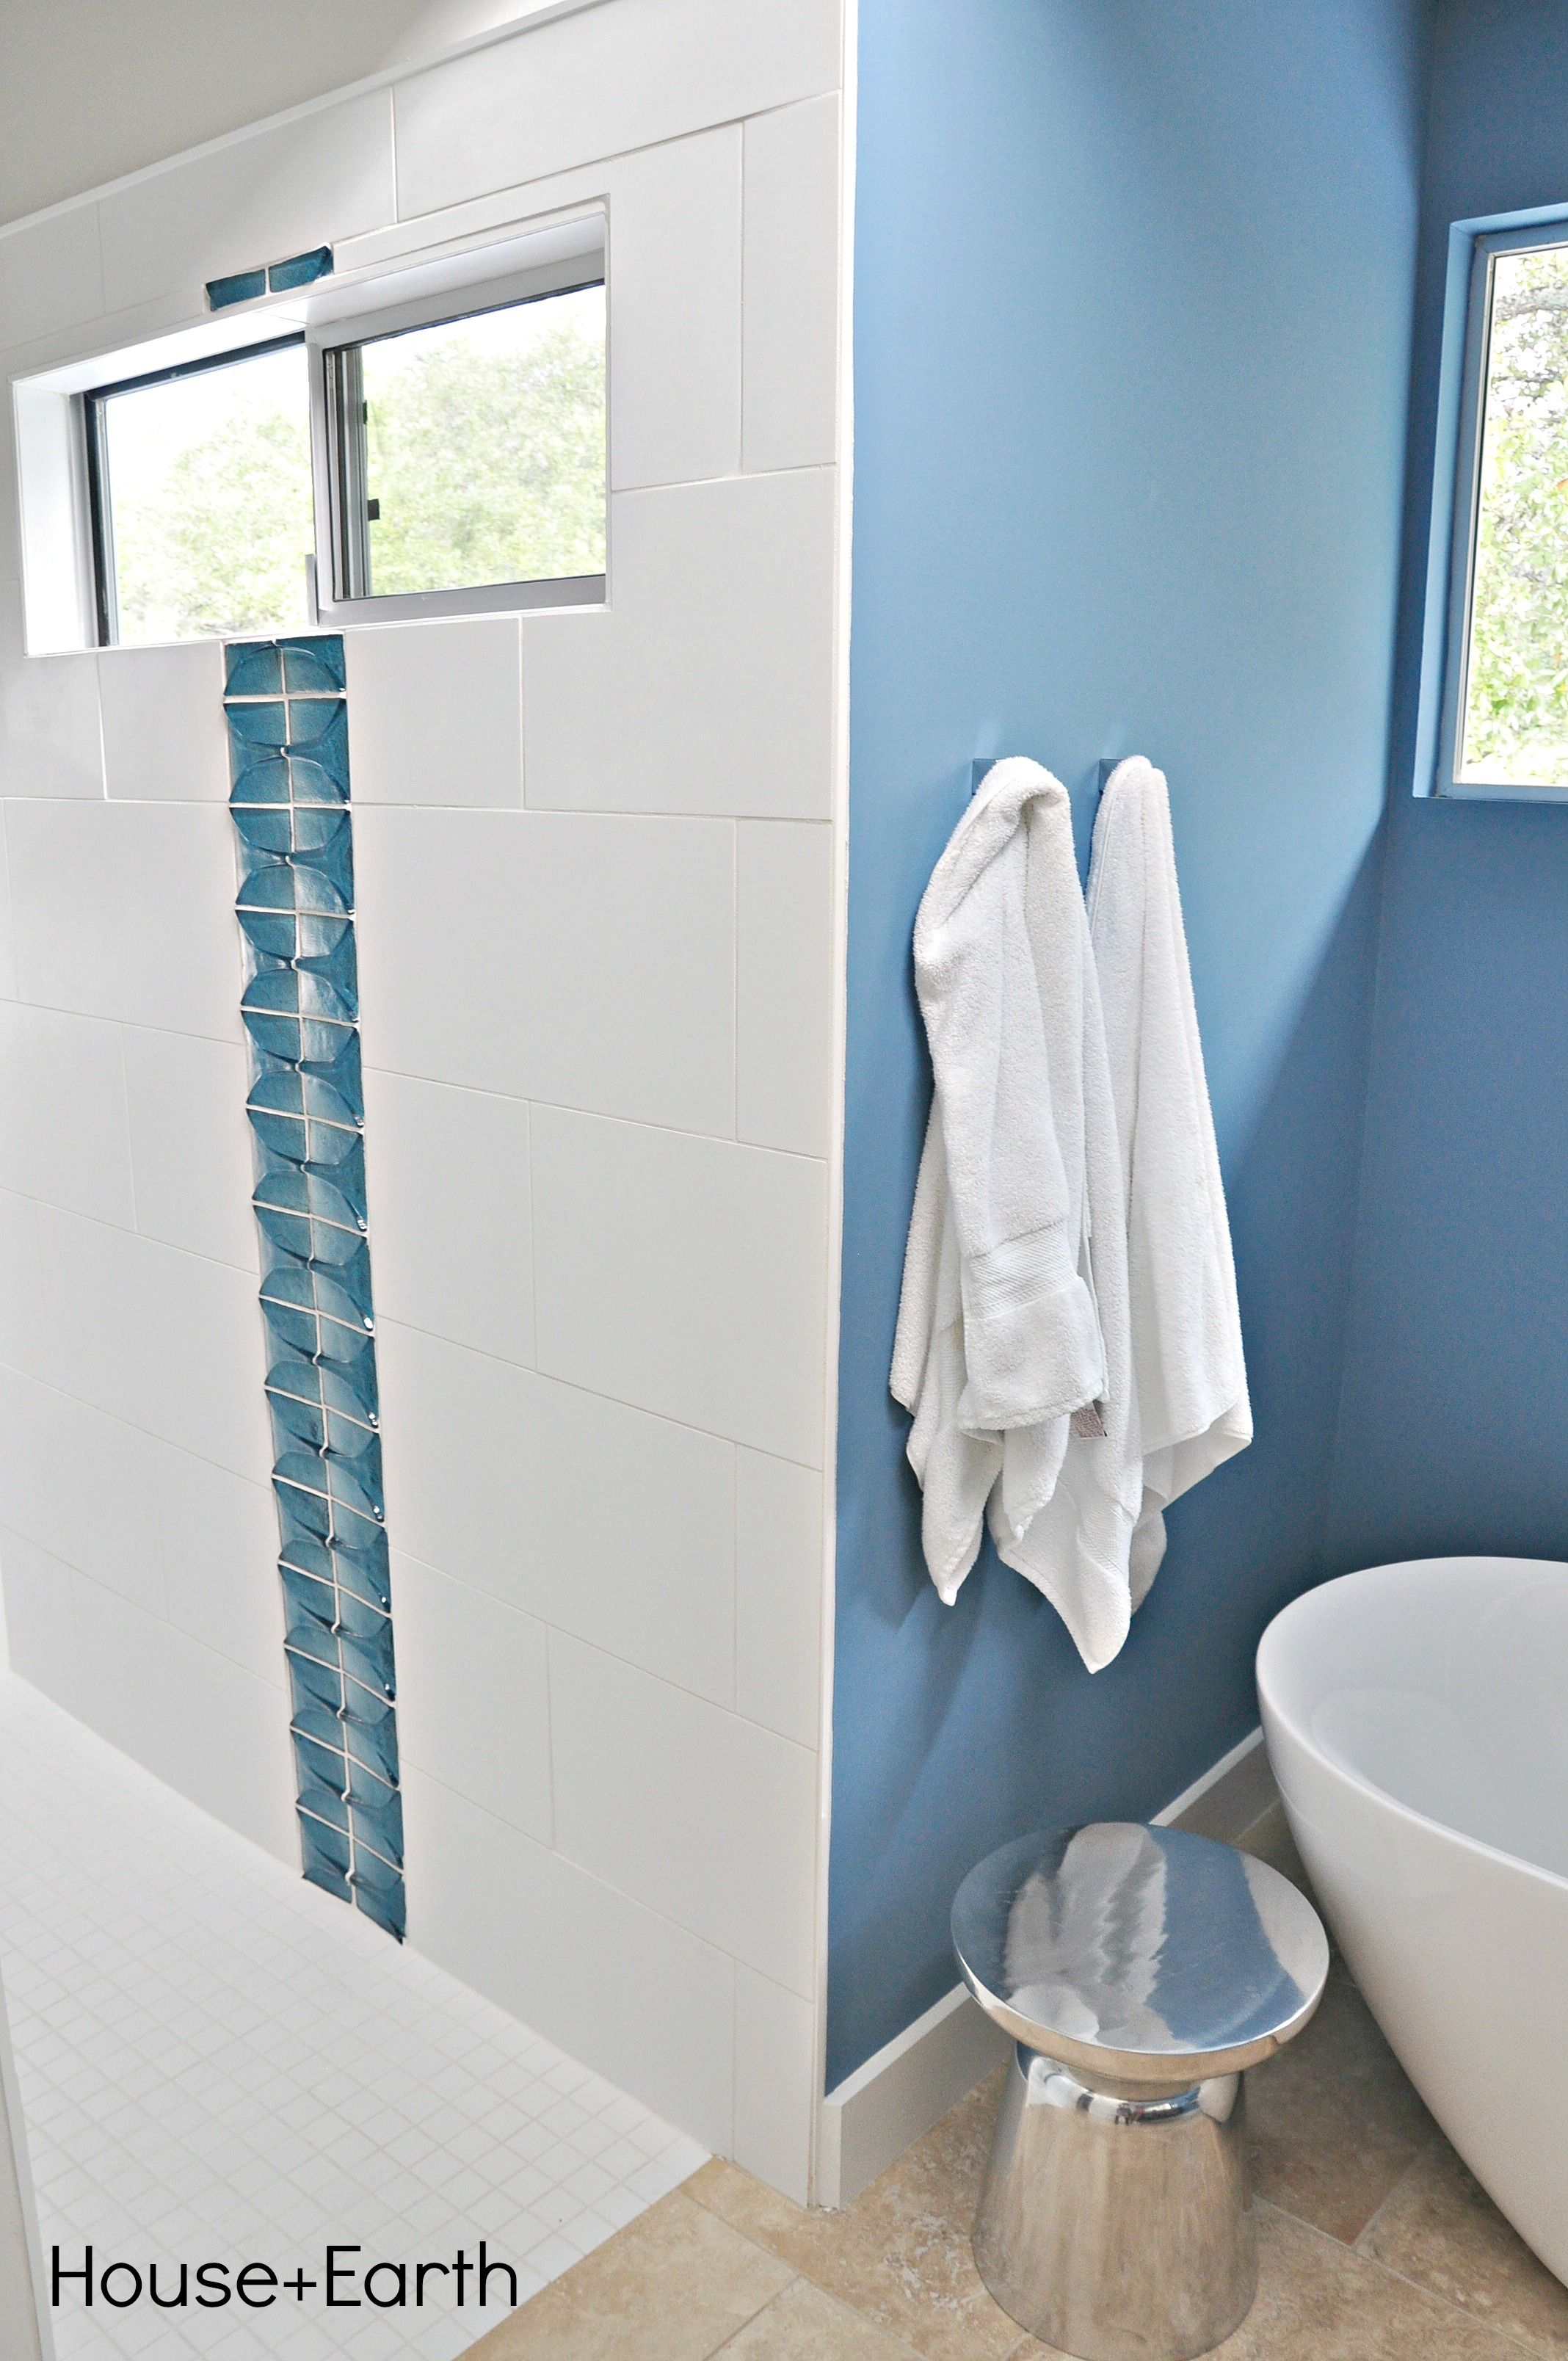 New build bathroom 12x24 white tile shower surround Tango Oceanside Glass Tile in Pacific